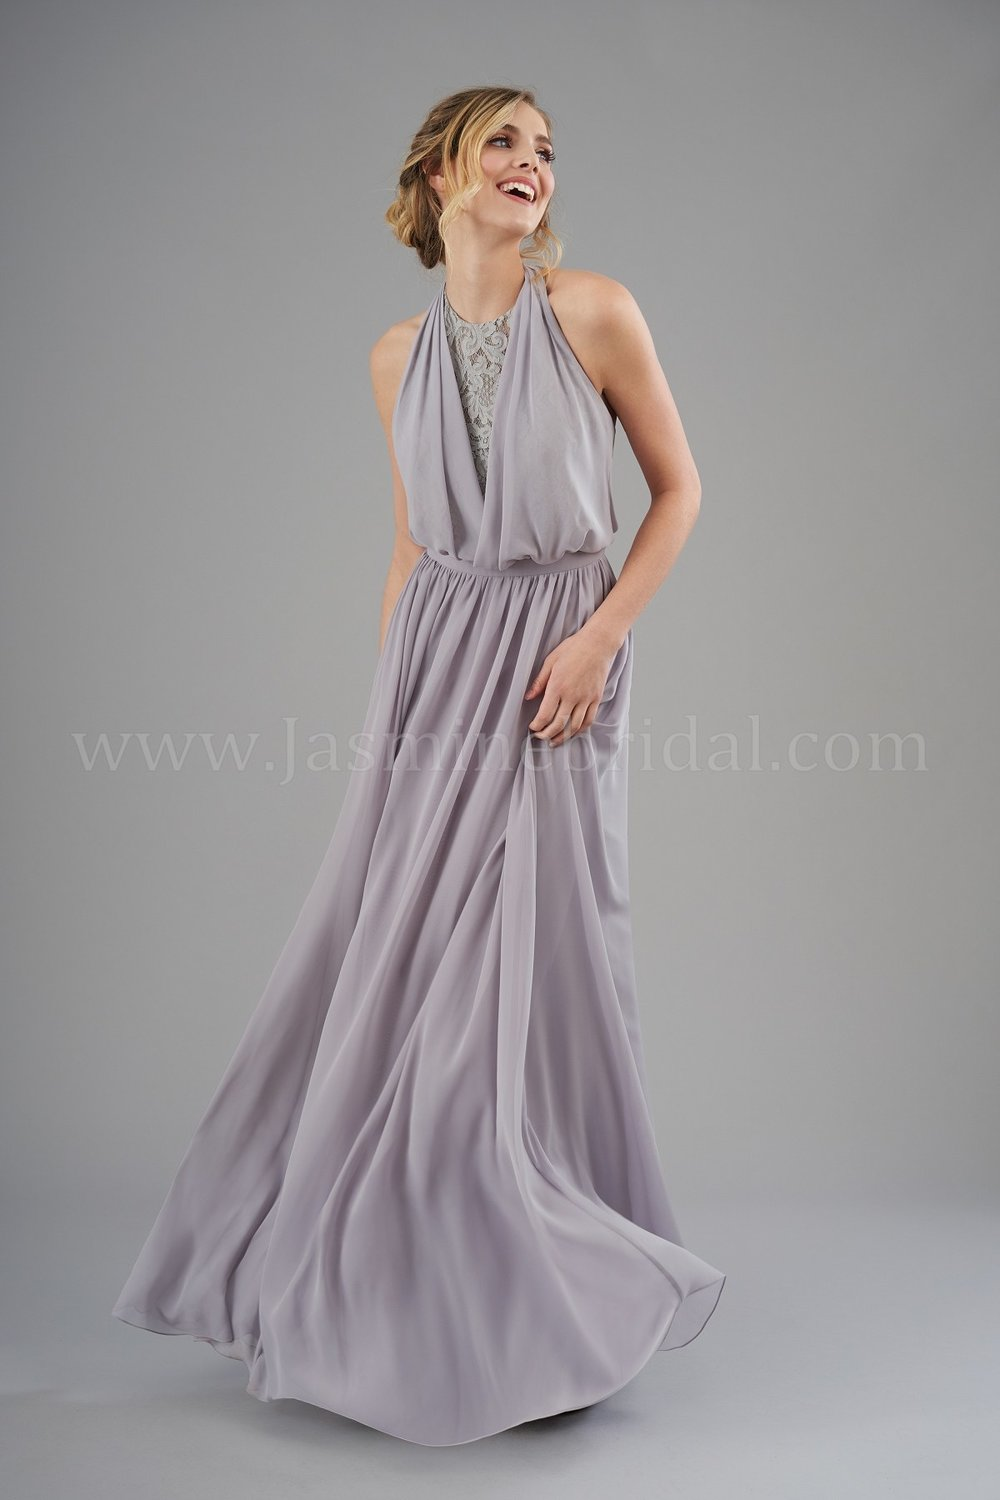 bridesmaid-dresses-B203058-F.jpg